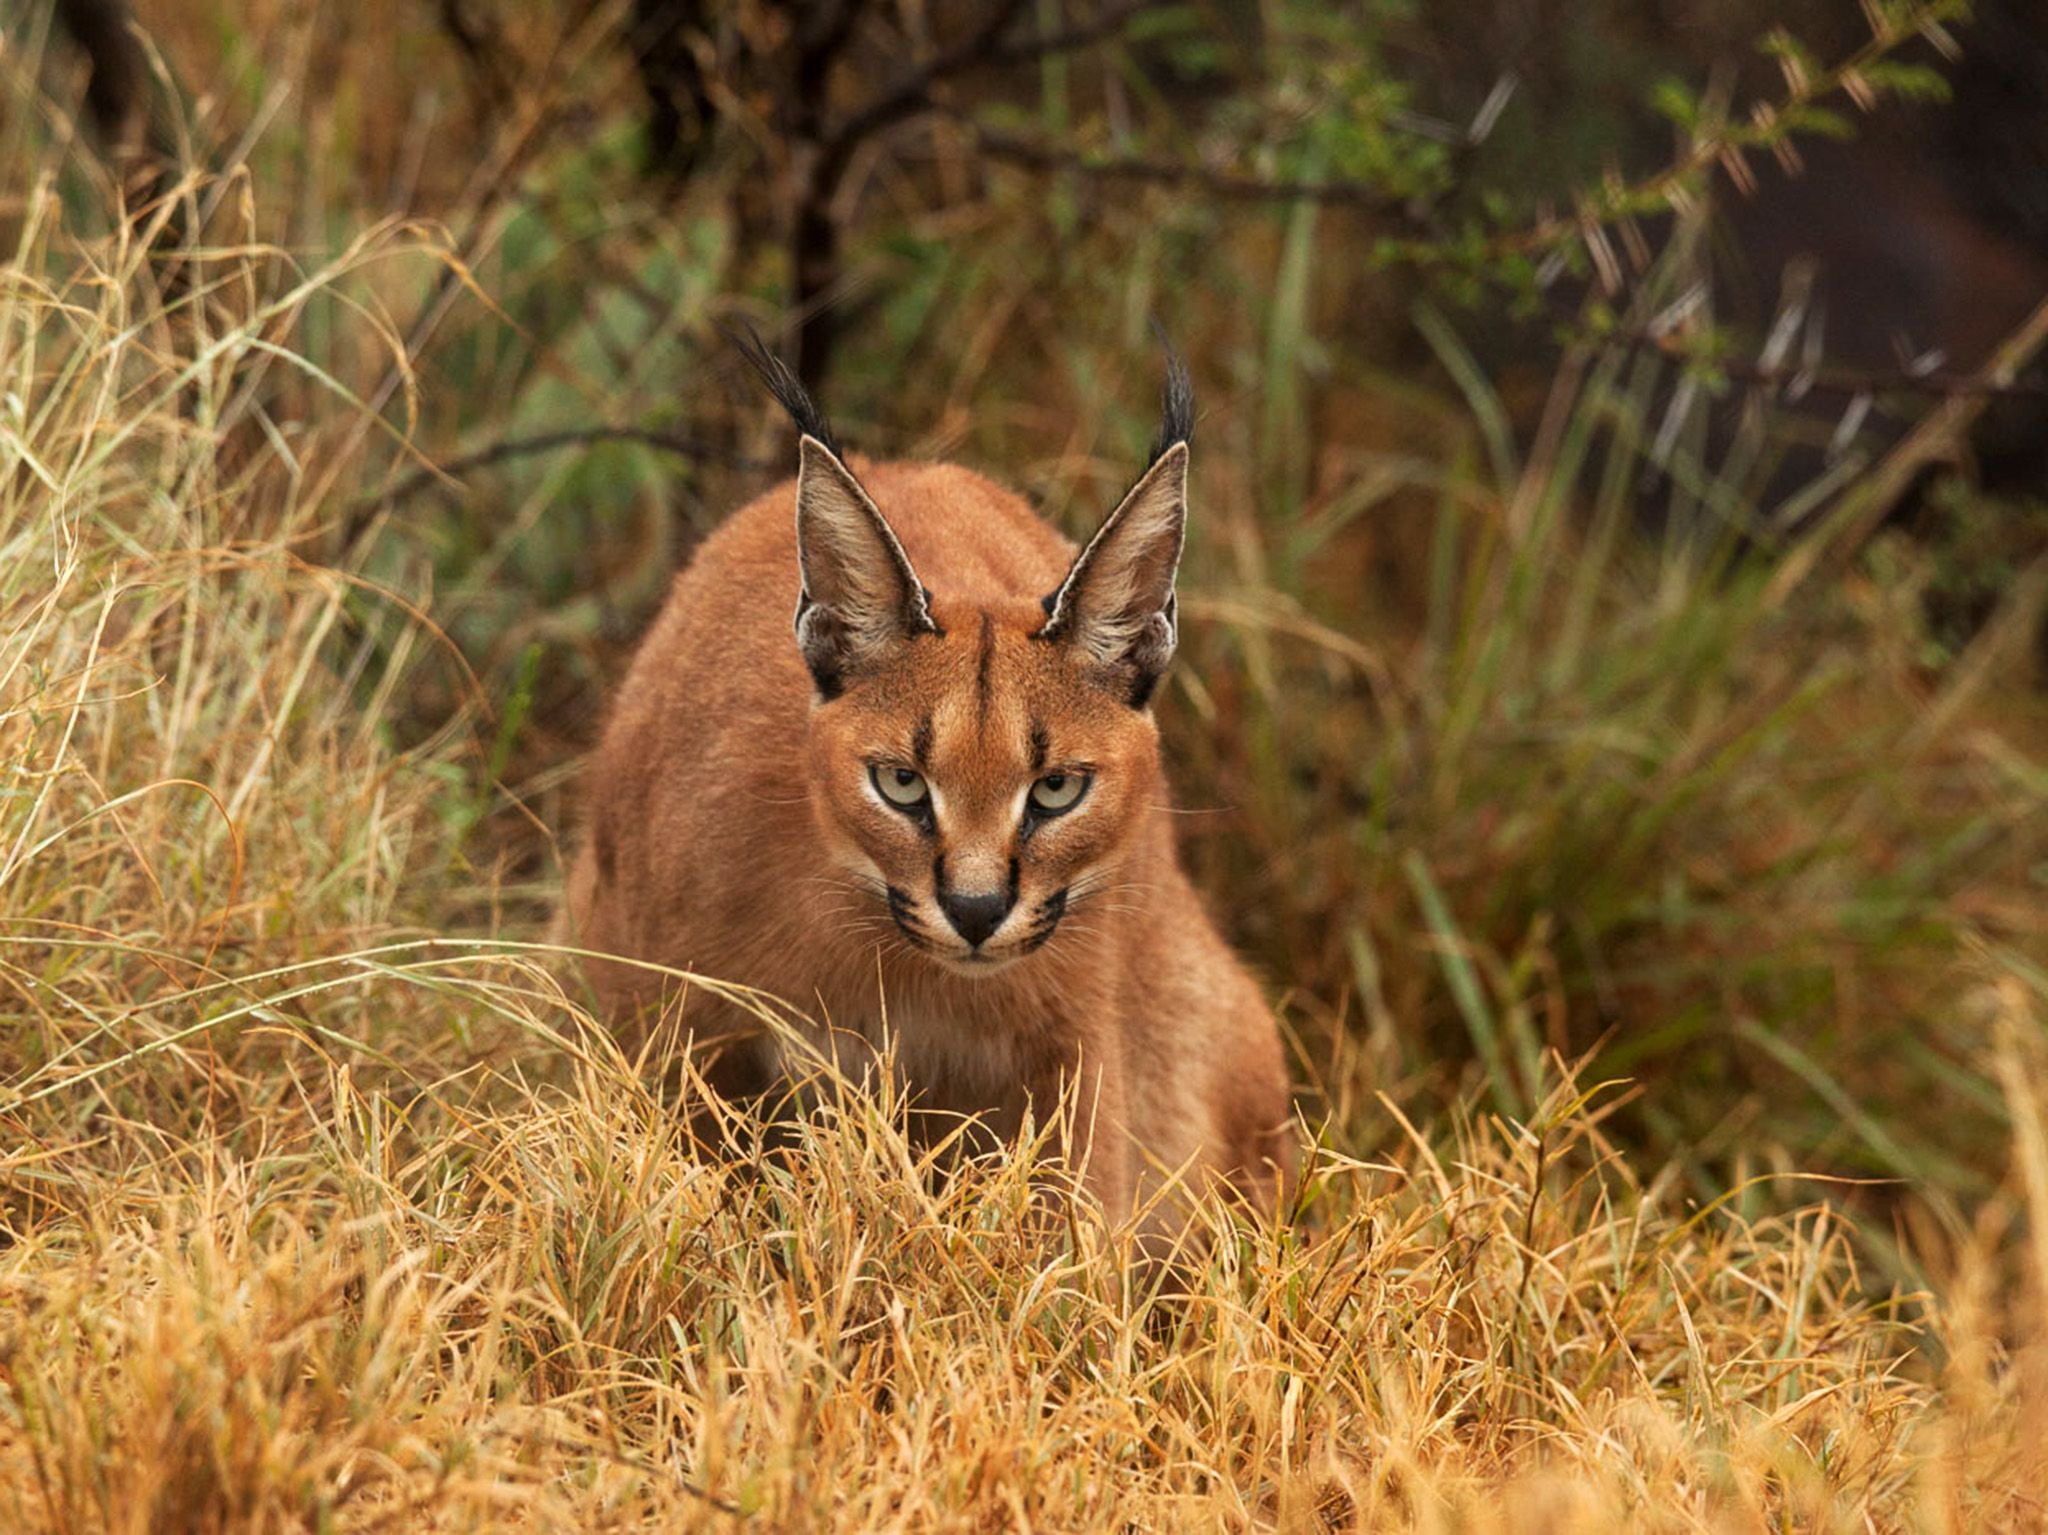 South Africa:  A caracal.  This image is from Wild Little Cats. [Photo of the day - March 2018]